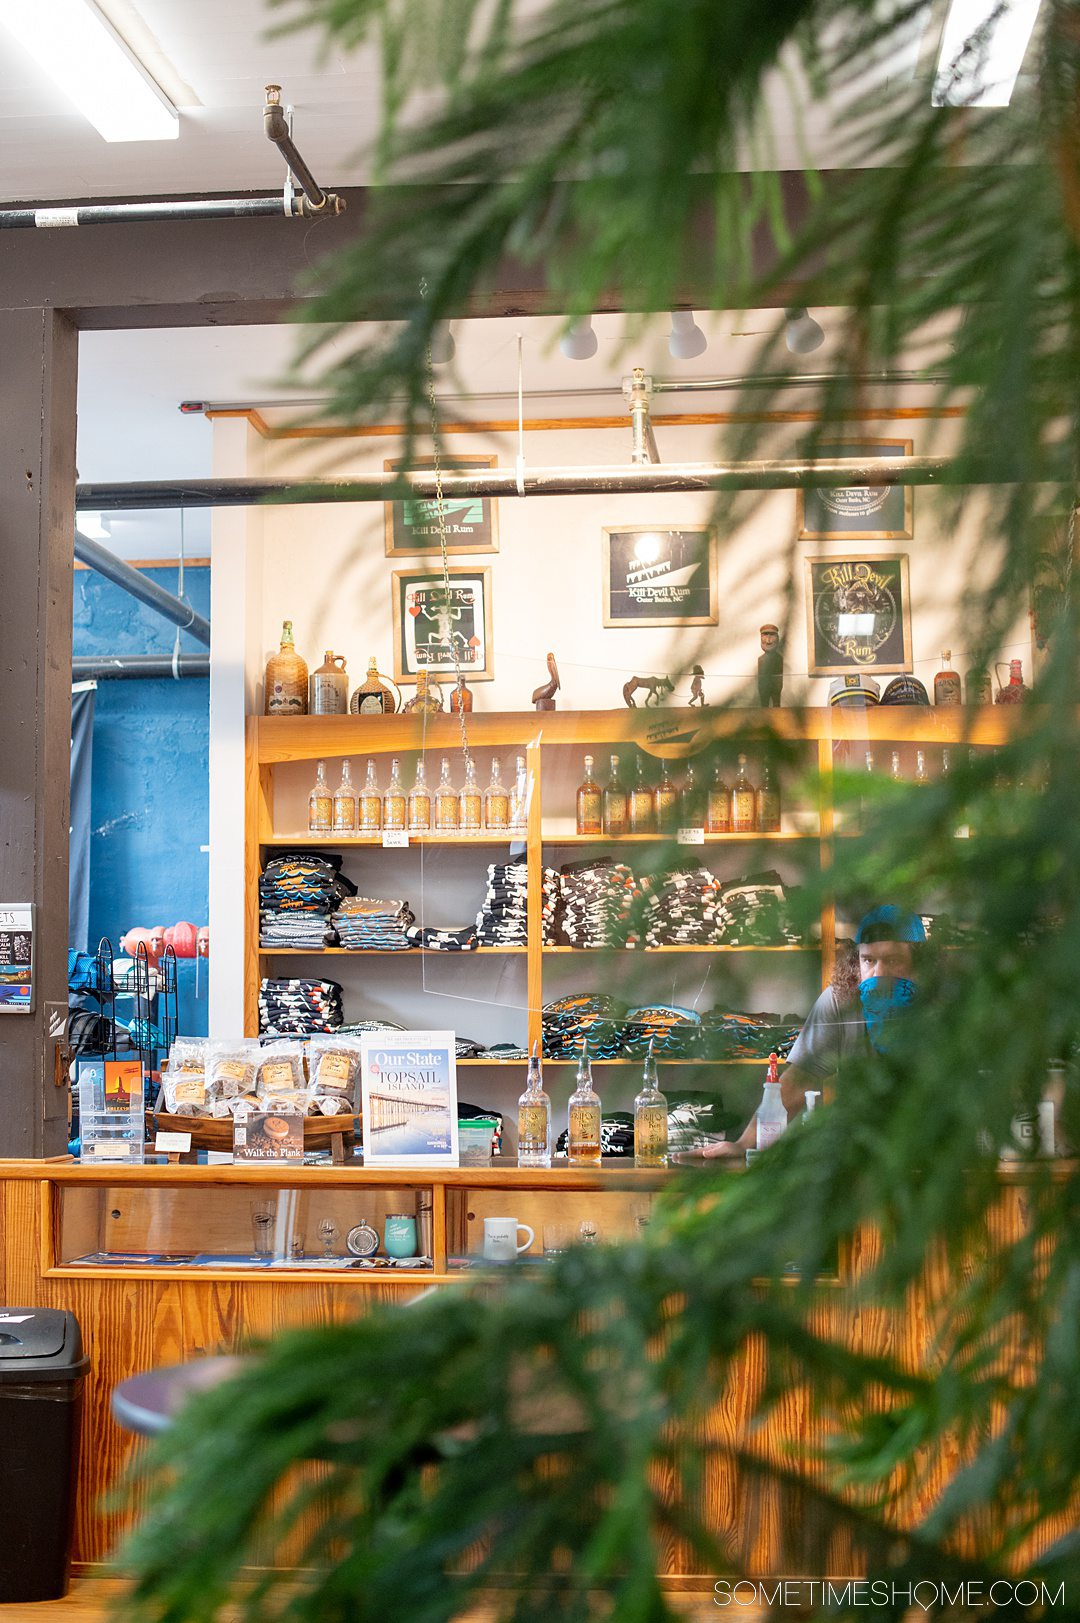 Pine tree branches and leaves in the foreground with merchandise shelves inside a distillery in the background at Outer Banks Distilling in North Carolina.